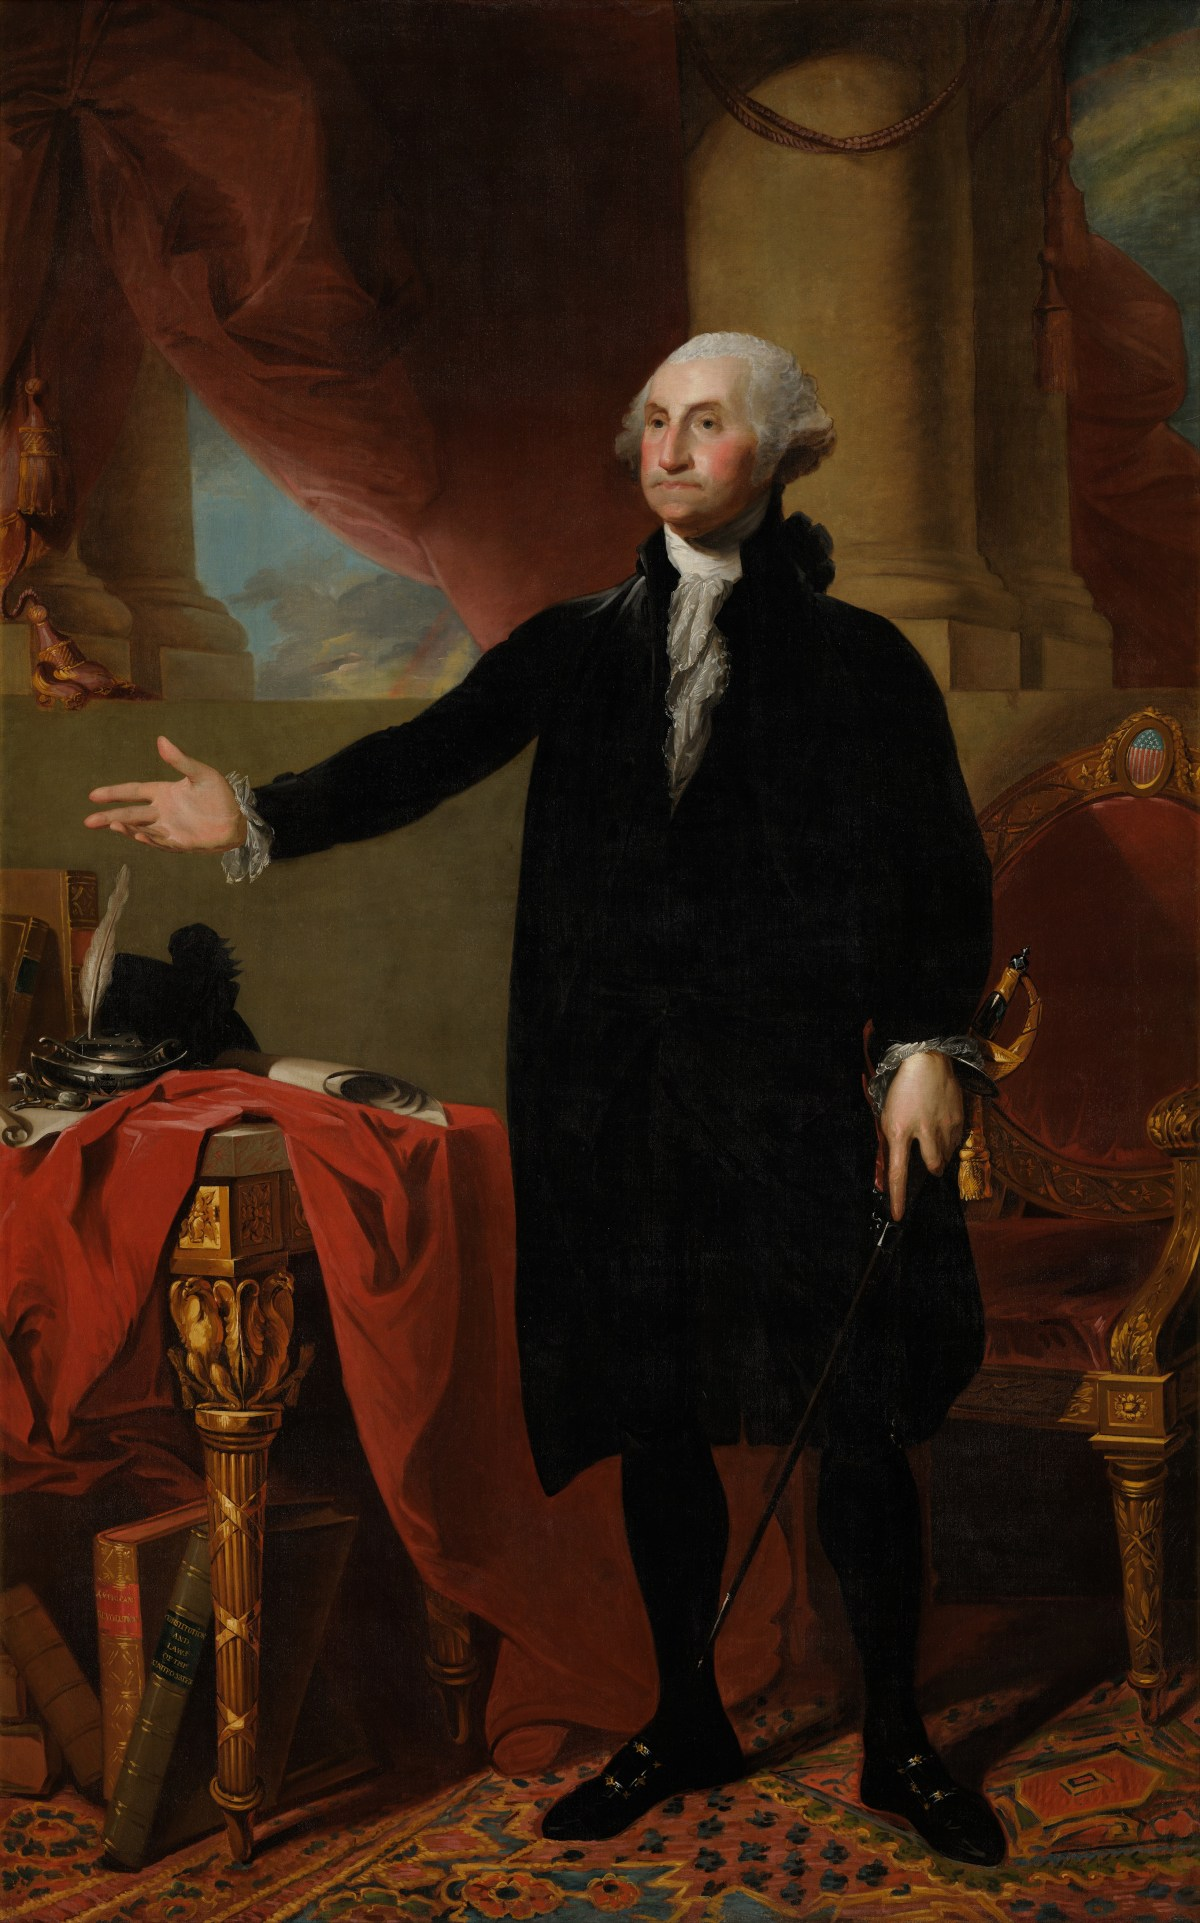 Lansdowne portrait of George Washington by Gilbert Stuart